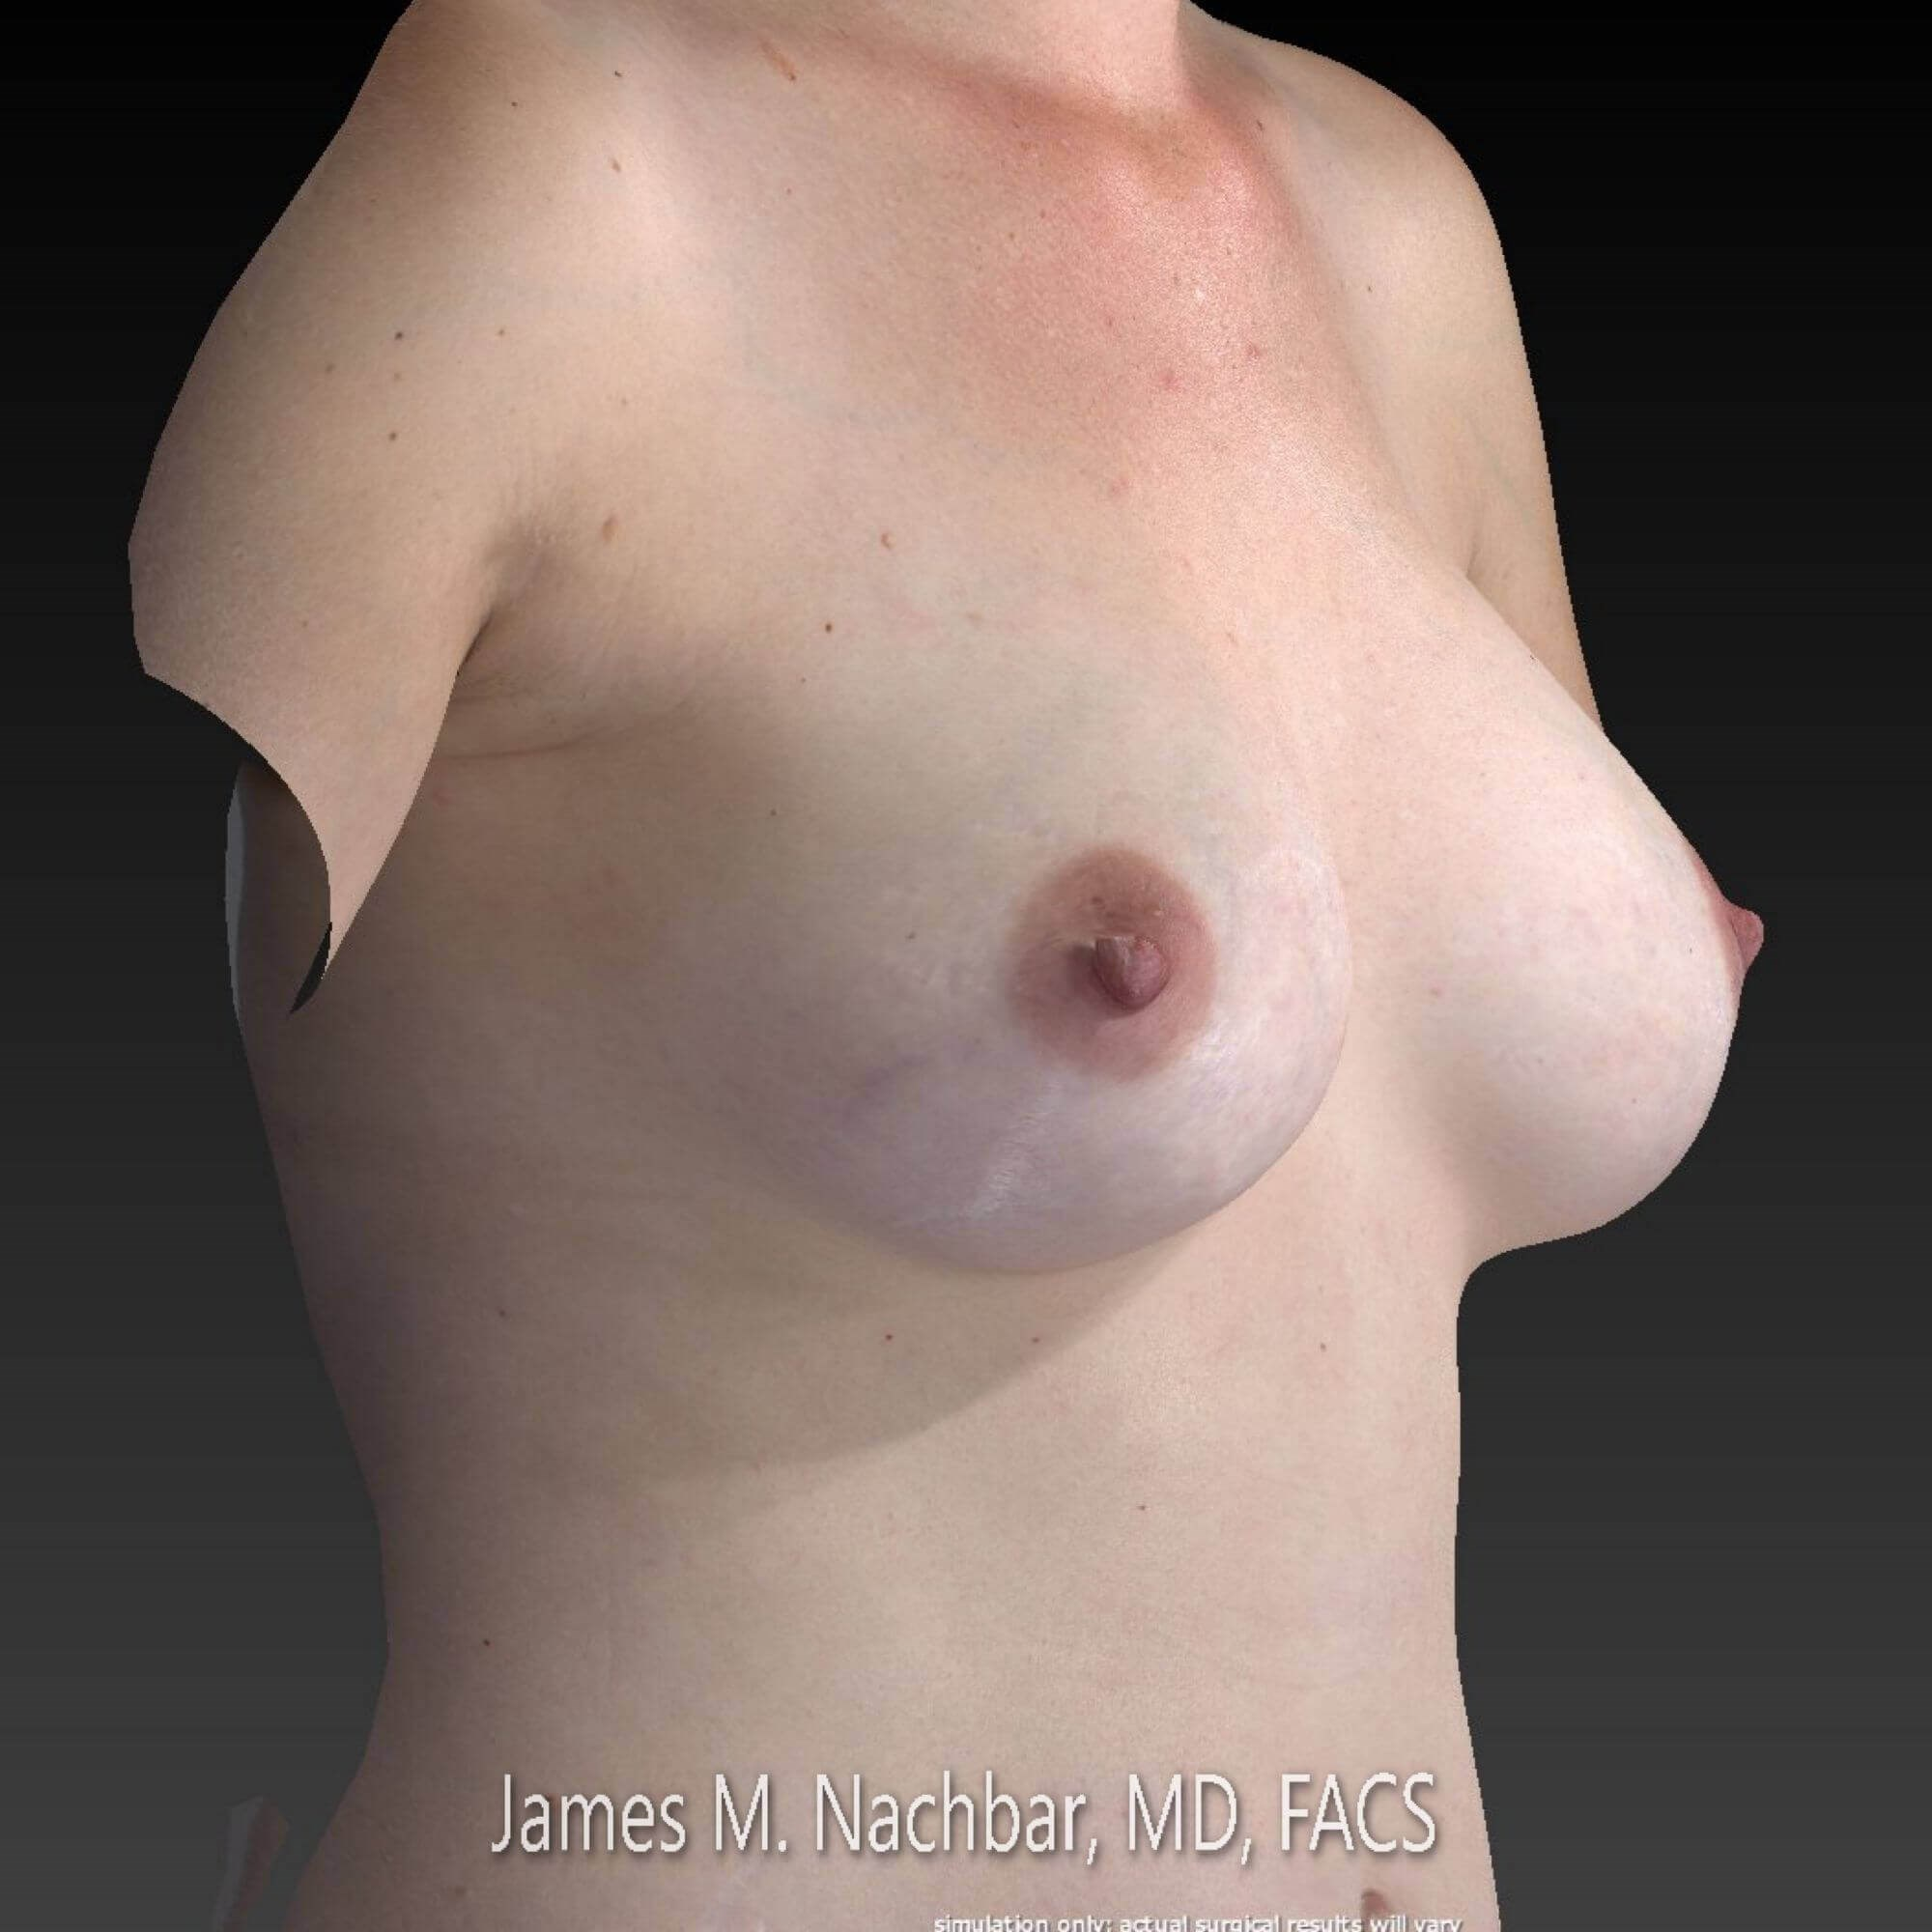 3D Surgery Simulation, oblique Simulation from pre-op 3D pic